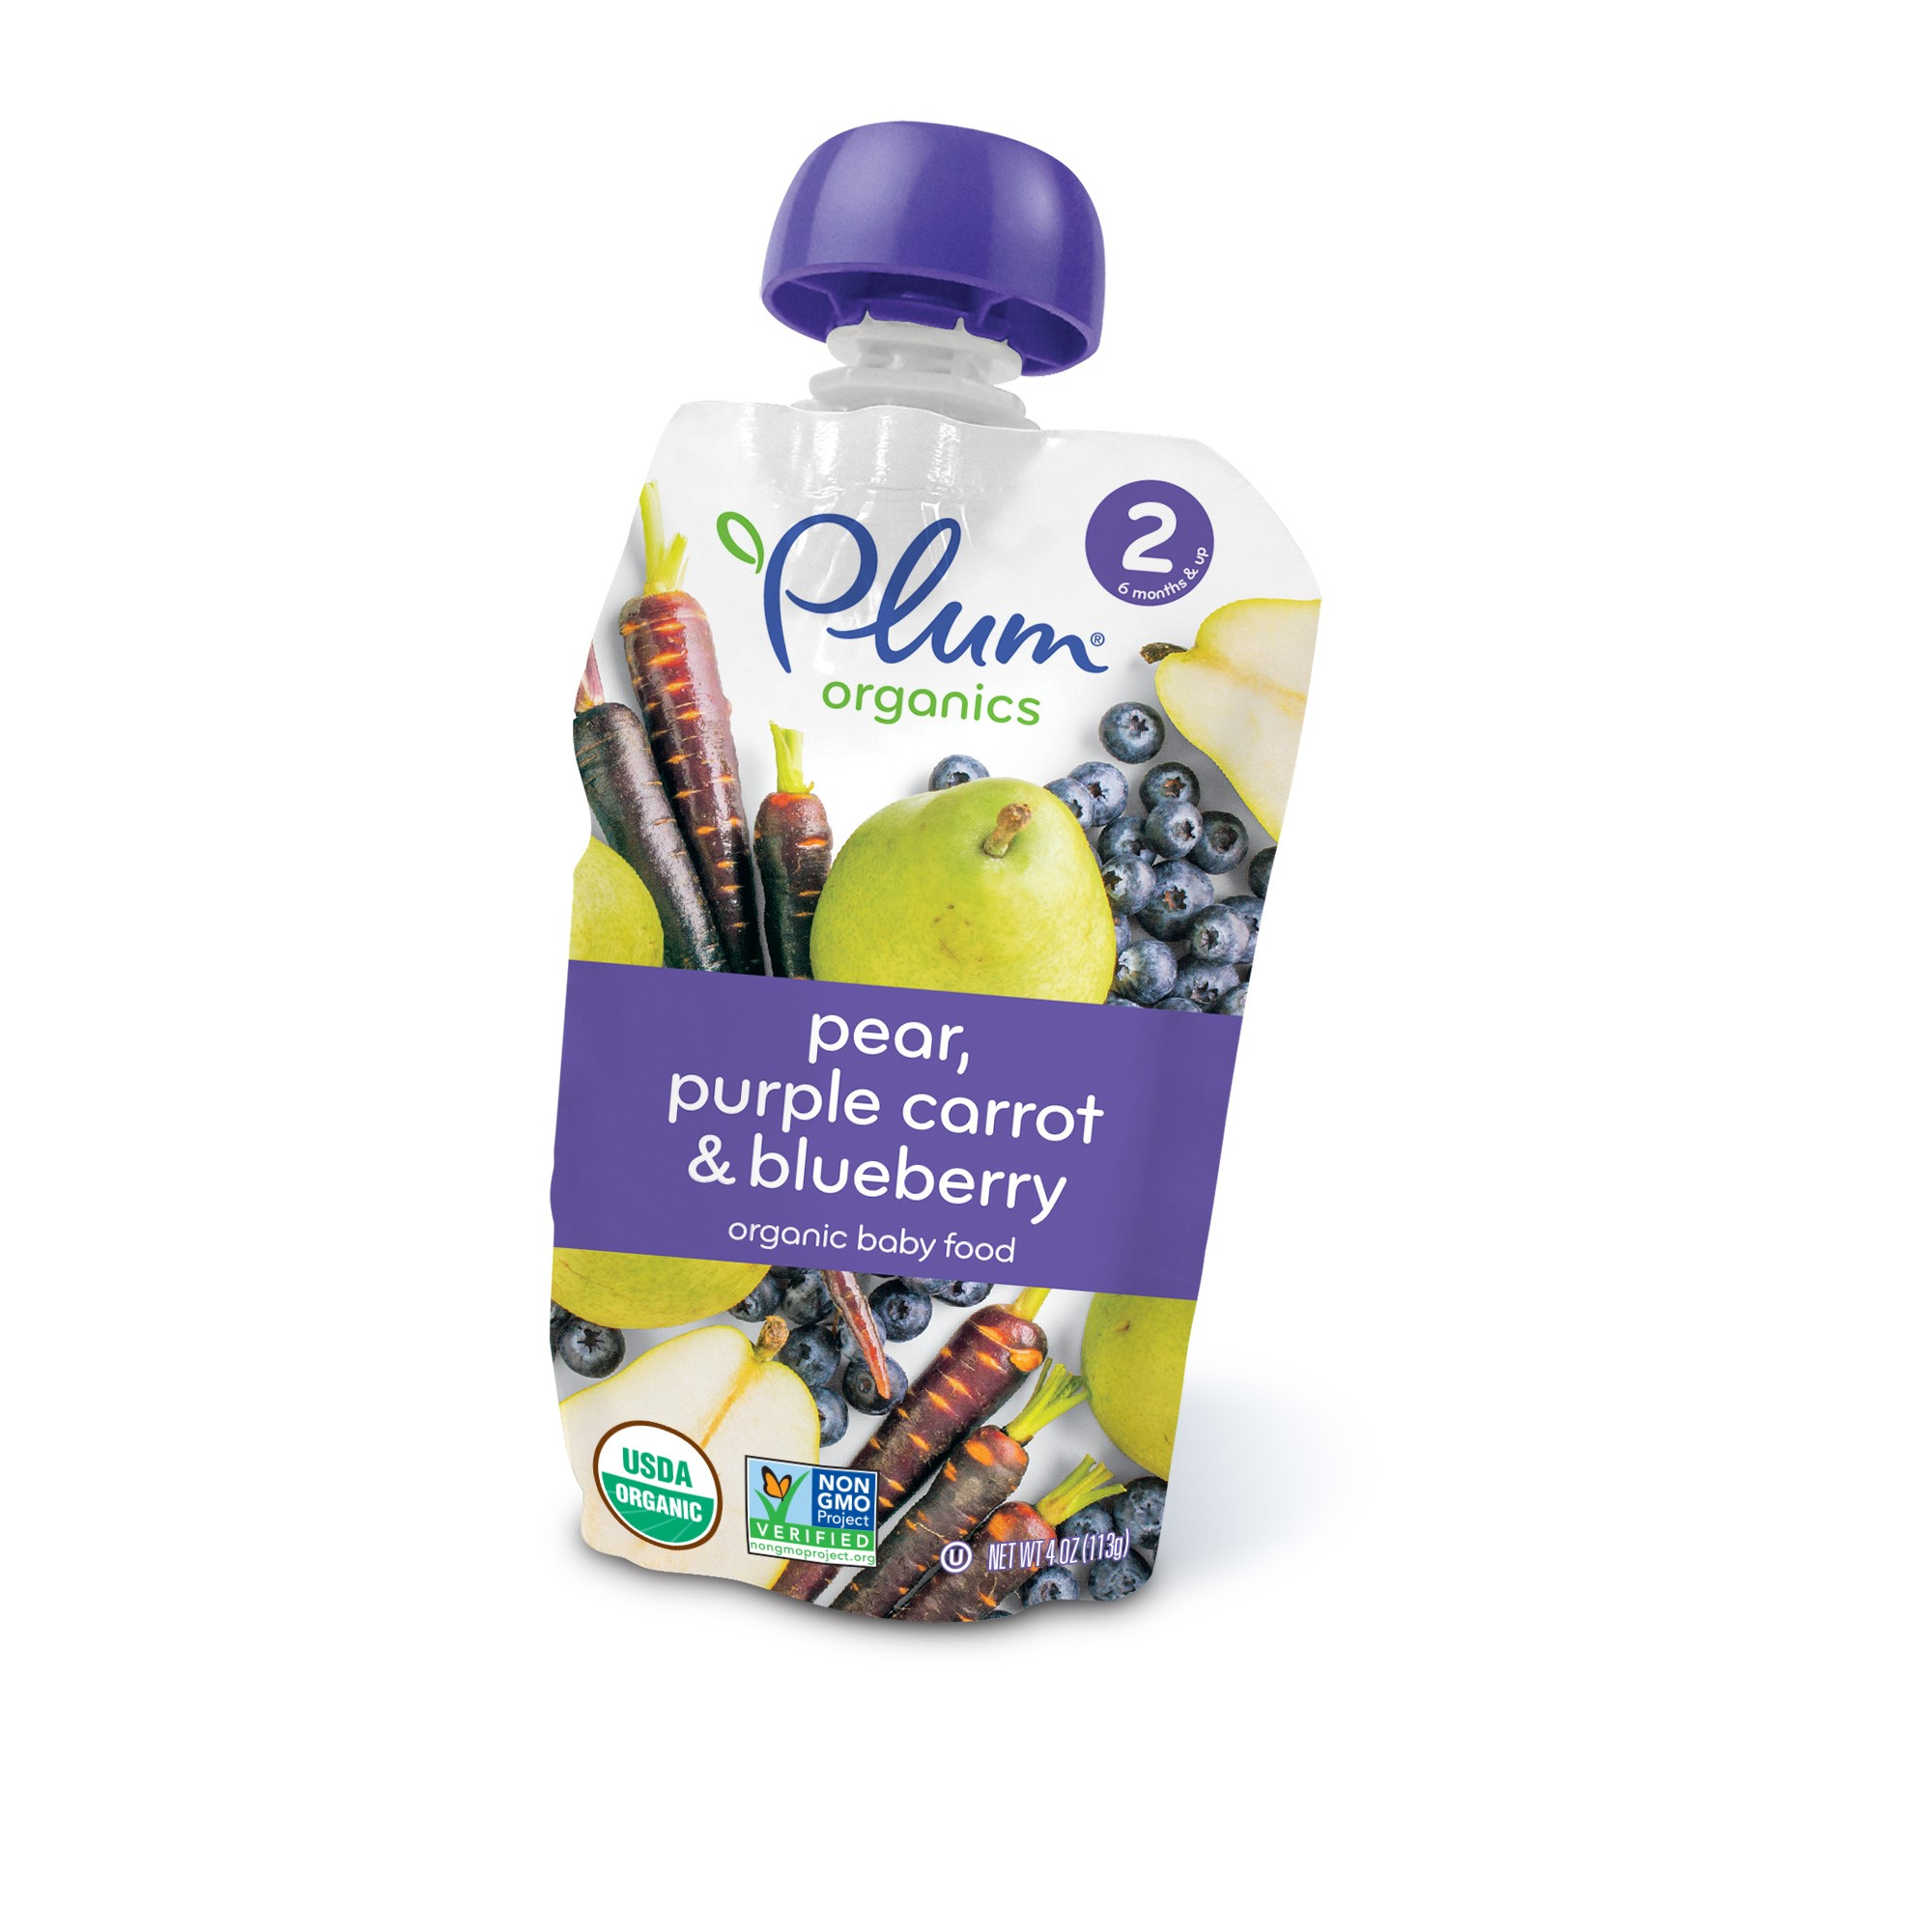 (6 Pack) Plum Organics Baby Food Pear, Purple Carrot & Blueberry, 4.0 OZ Stage 2